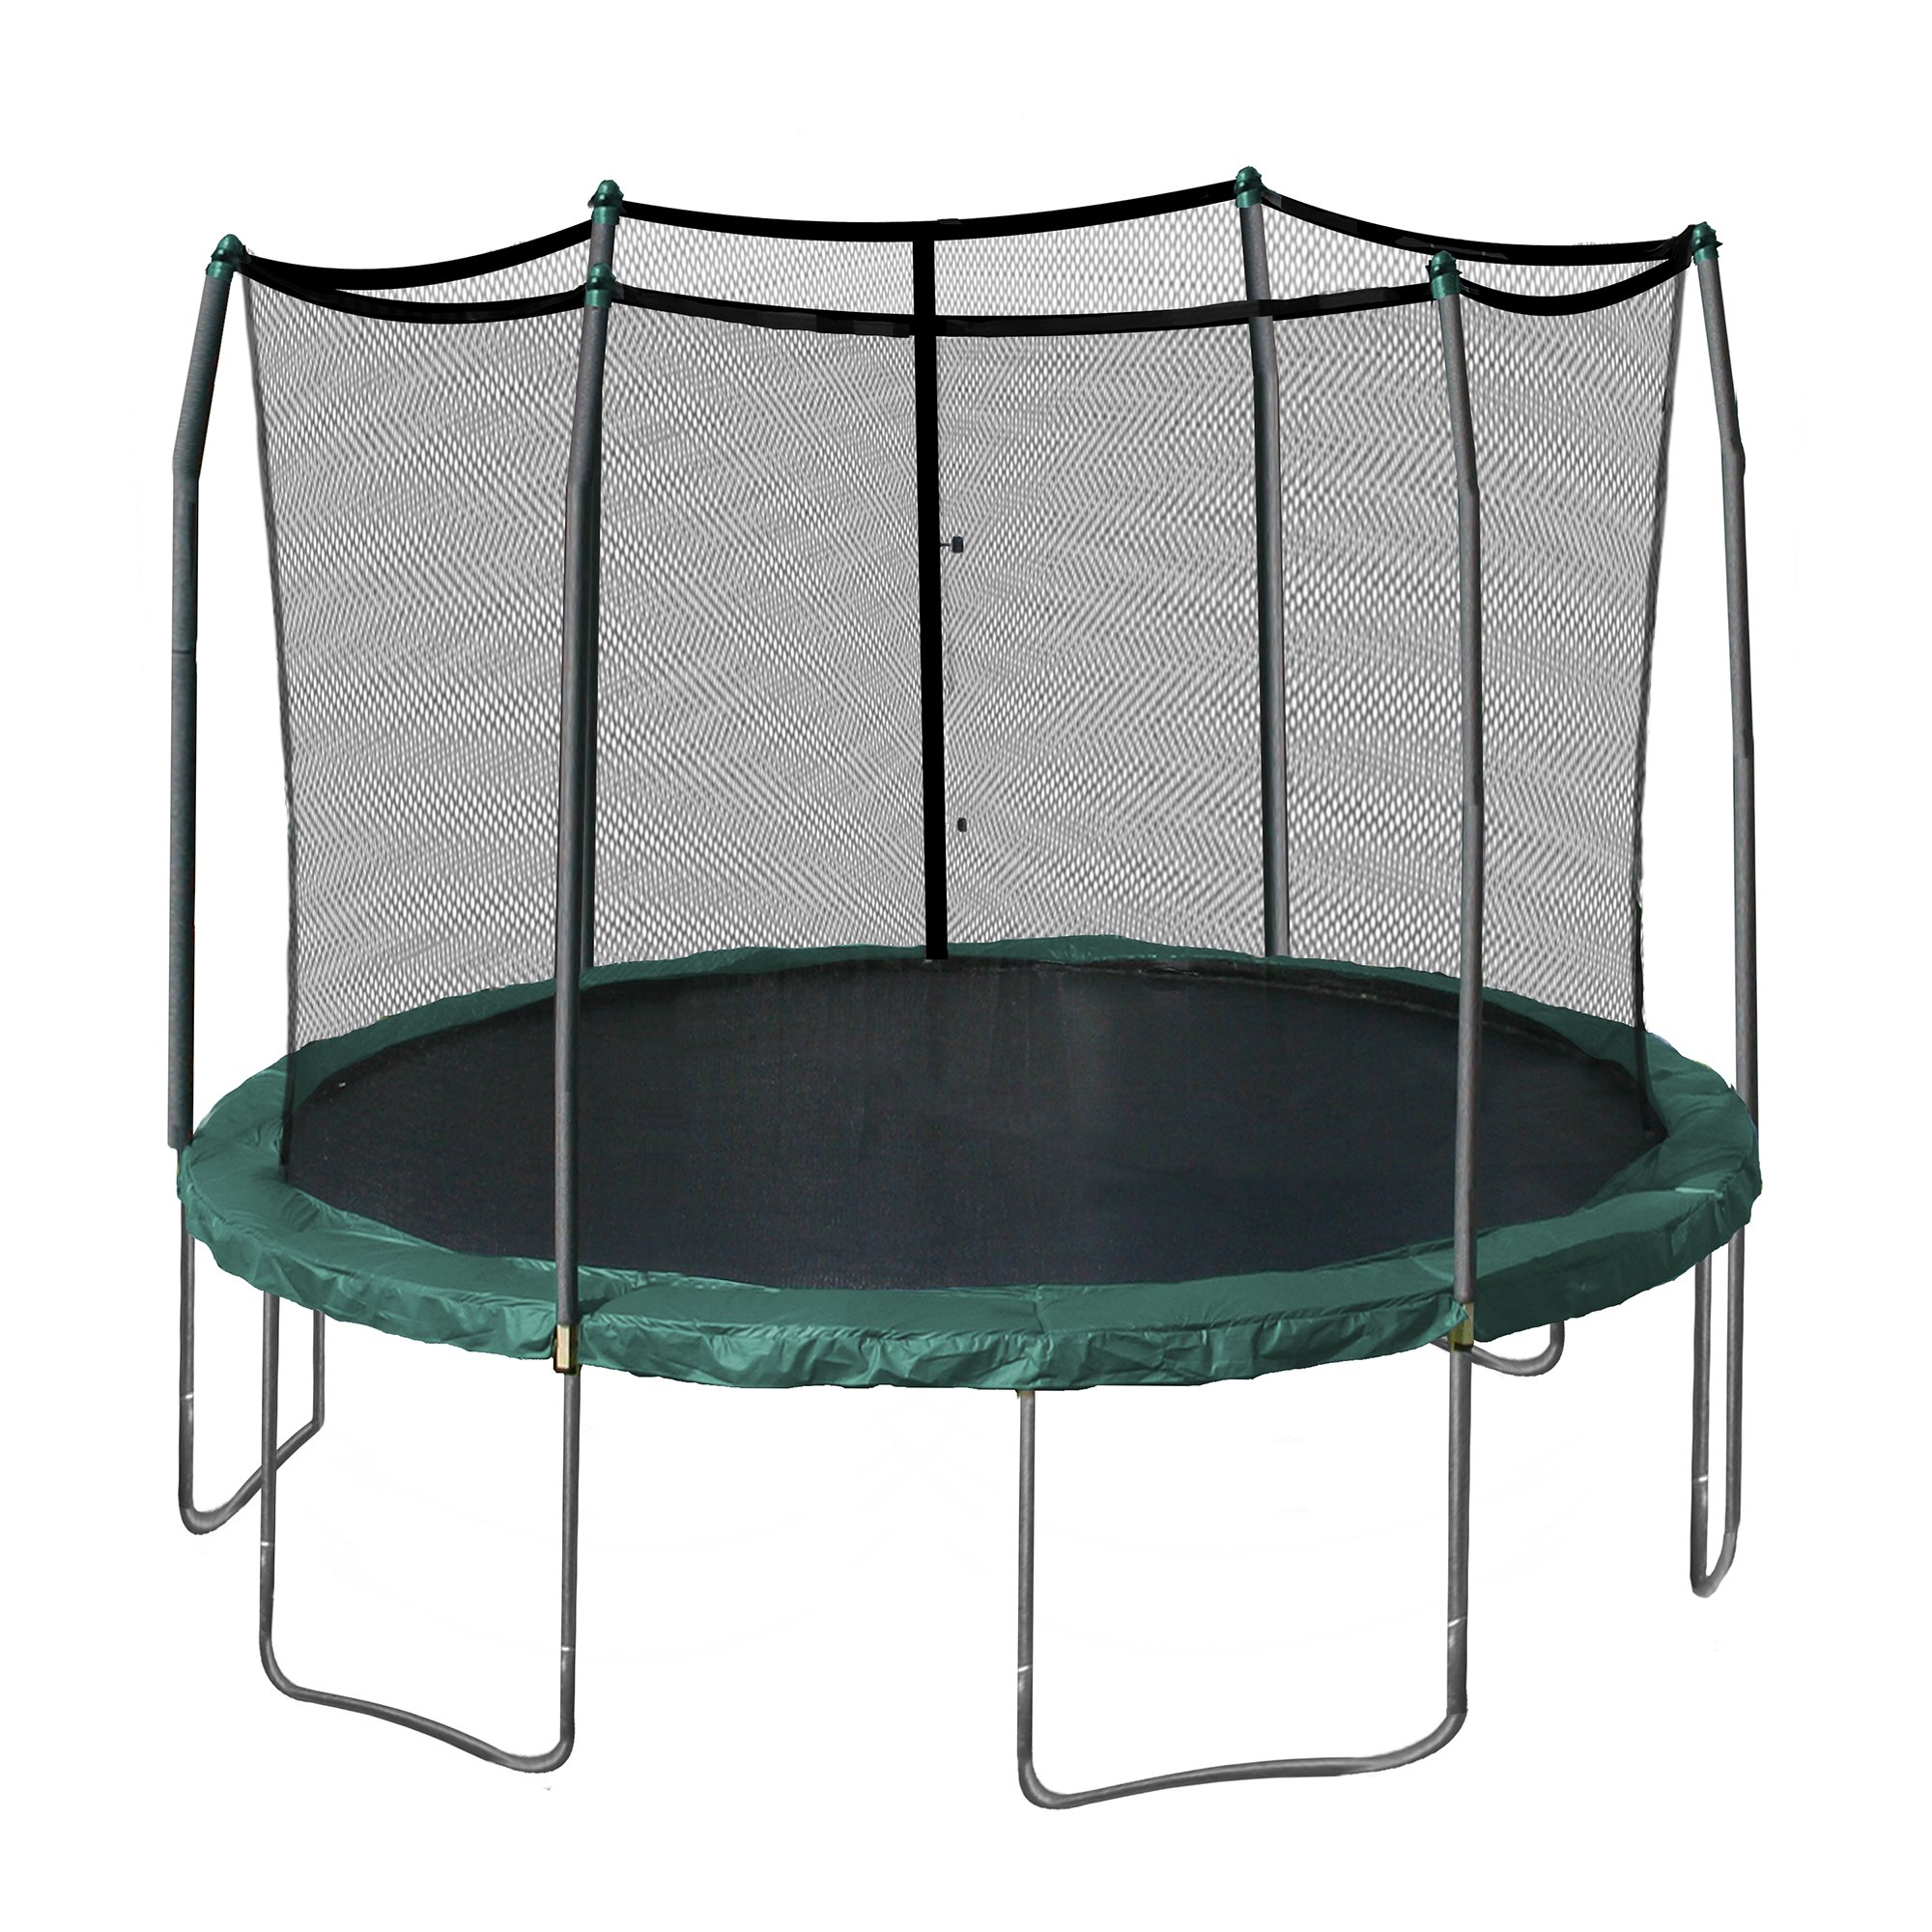 Skywalker 12-Feet Round Trampoline and Enclosure Combo with Spring Pad, Green